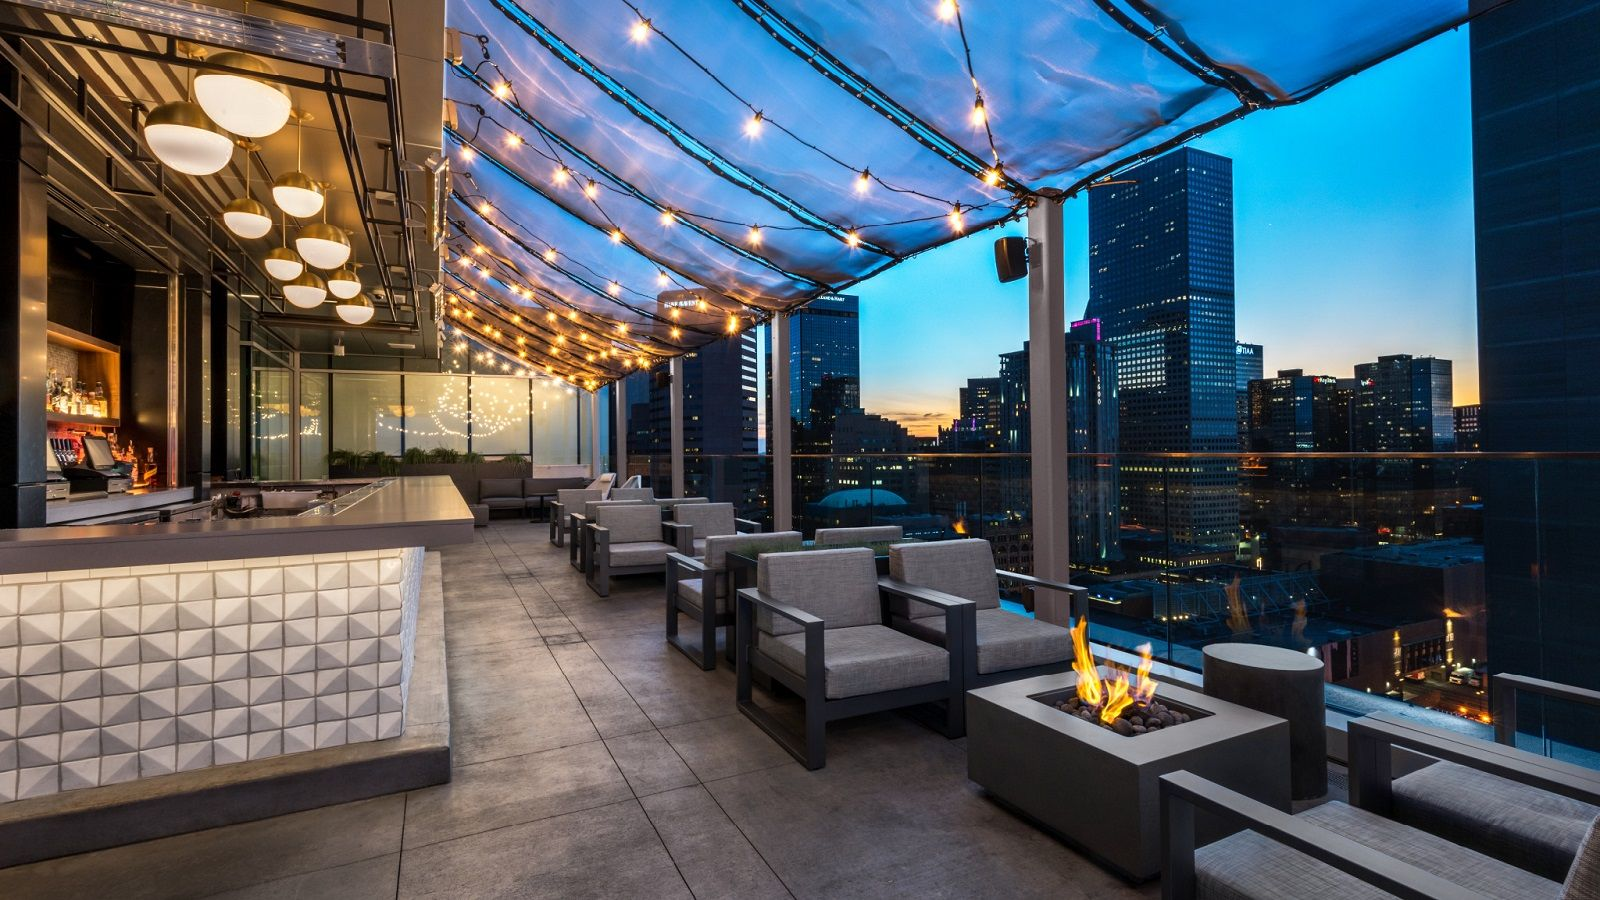 54Thirty rooftop bar at Le Meridien Downtown Denver